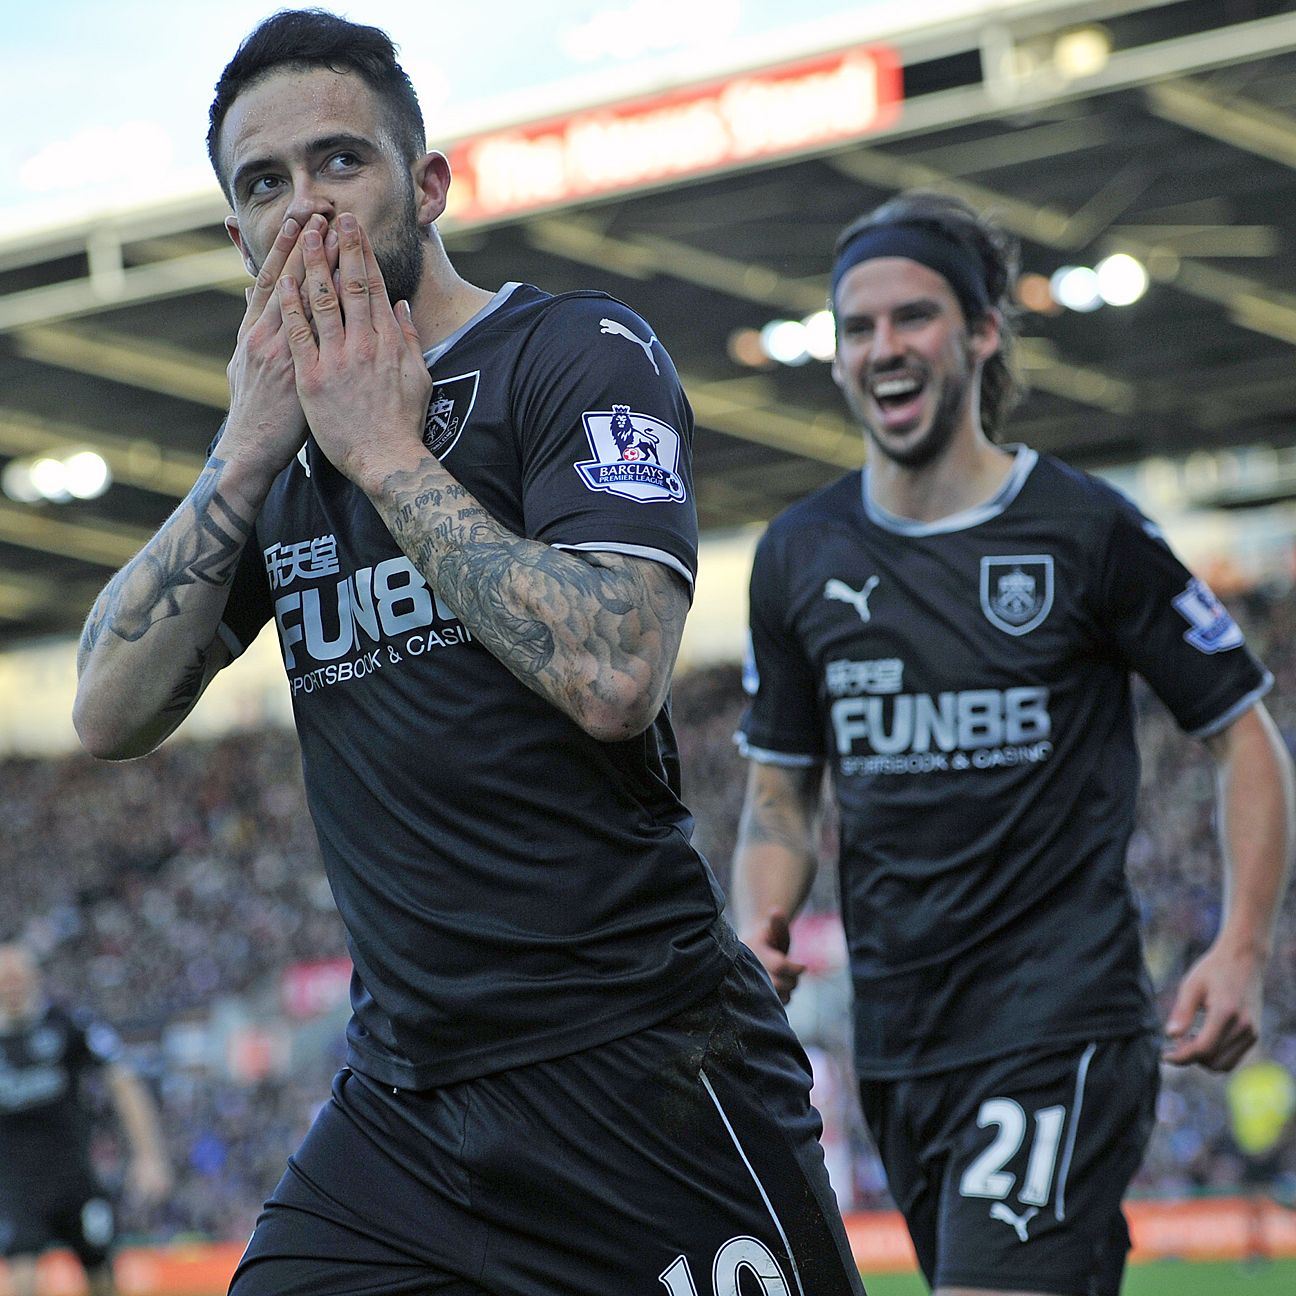 Burnley's Danny Ings gave fantasy owners a reason to smile by scoring a brace against Stoke.